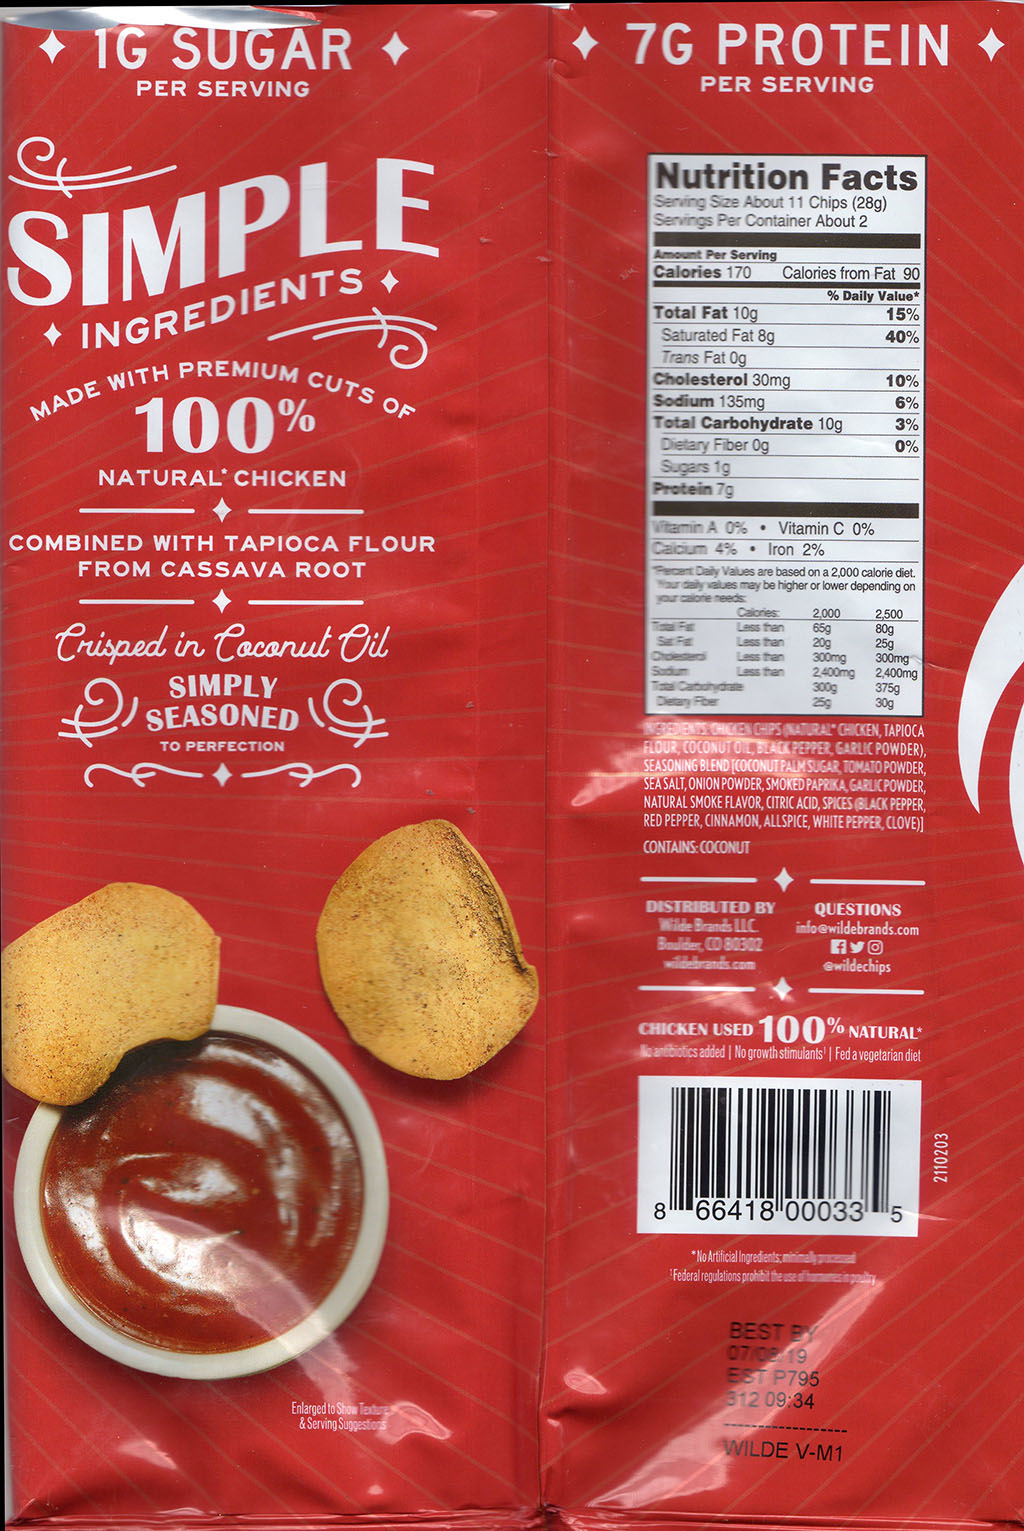 Wilde Brand BBQ Chicken Chips nutrition and ingredients